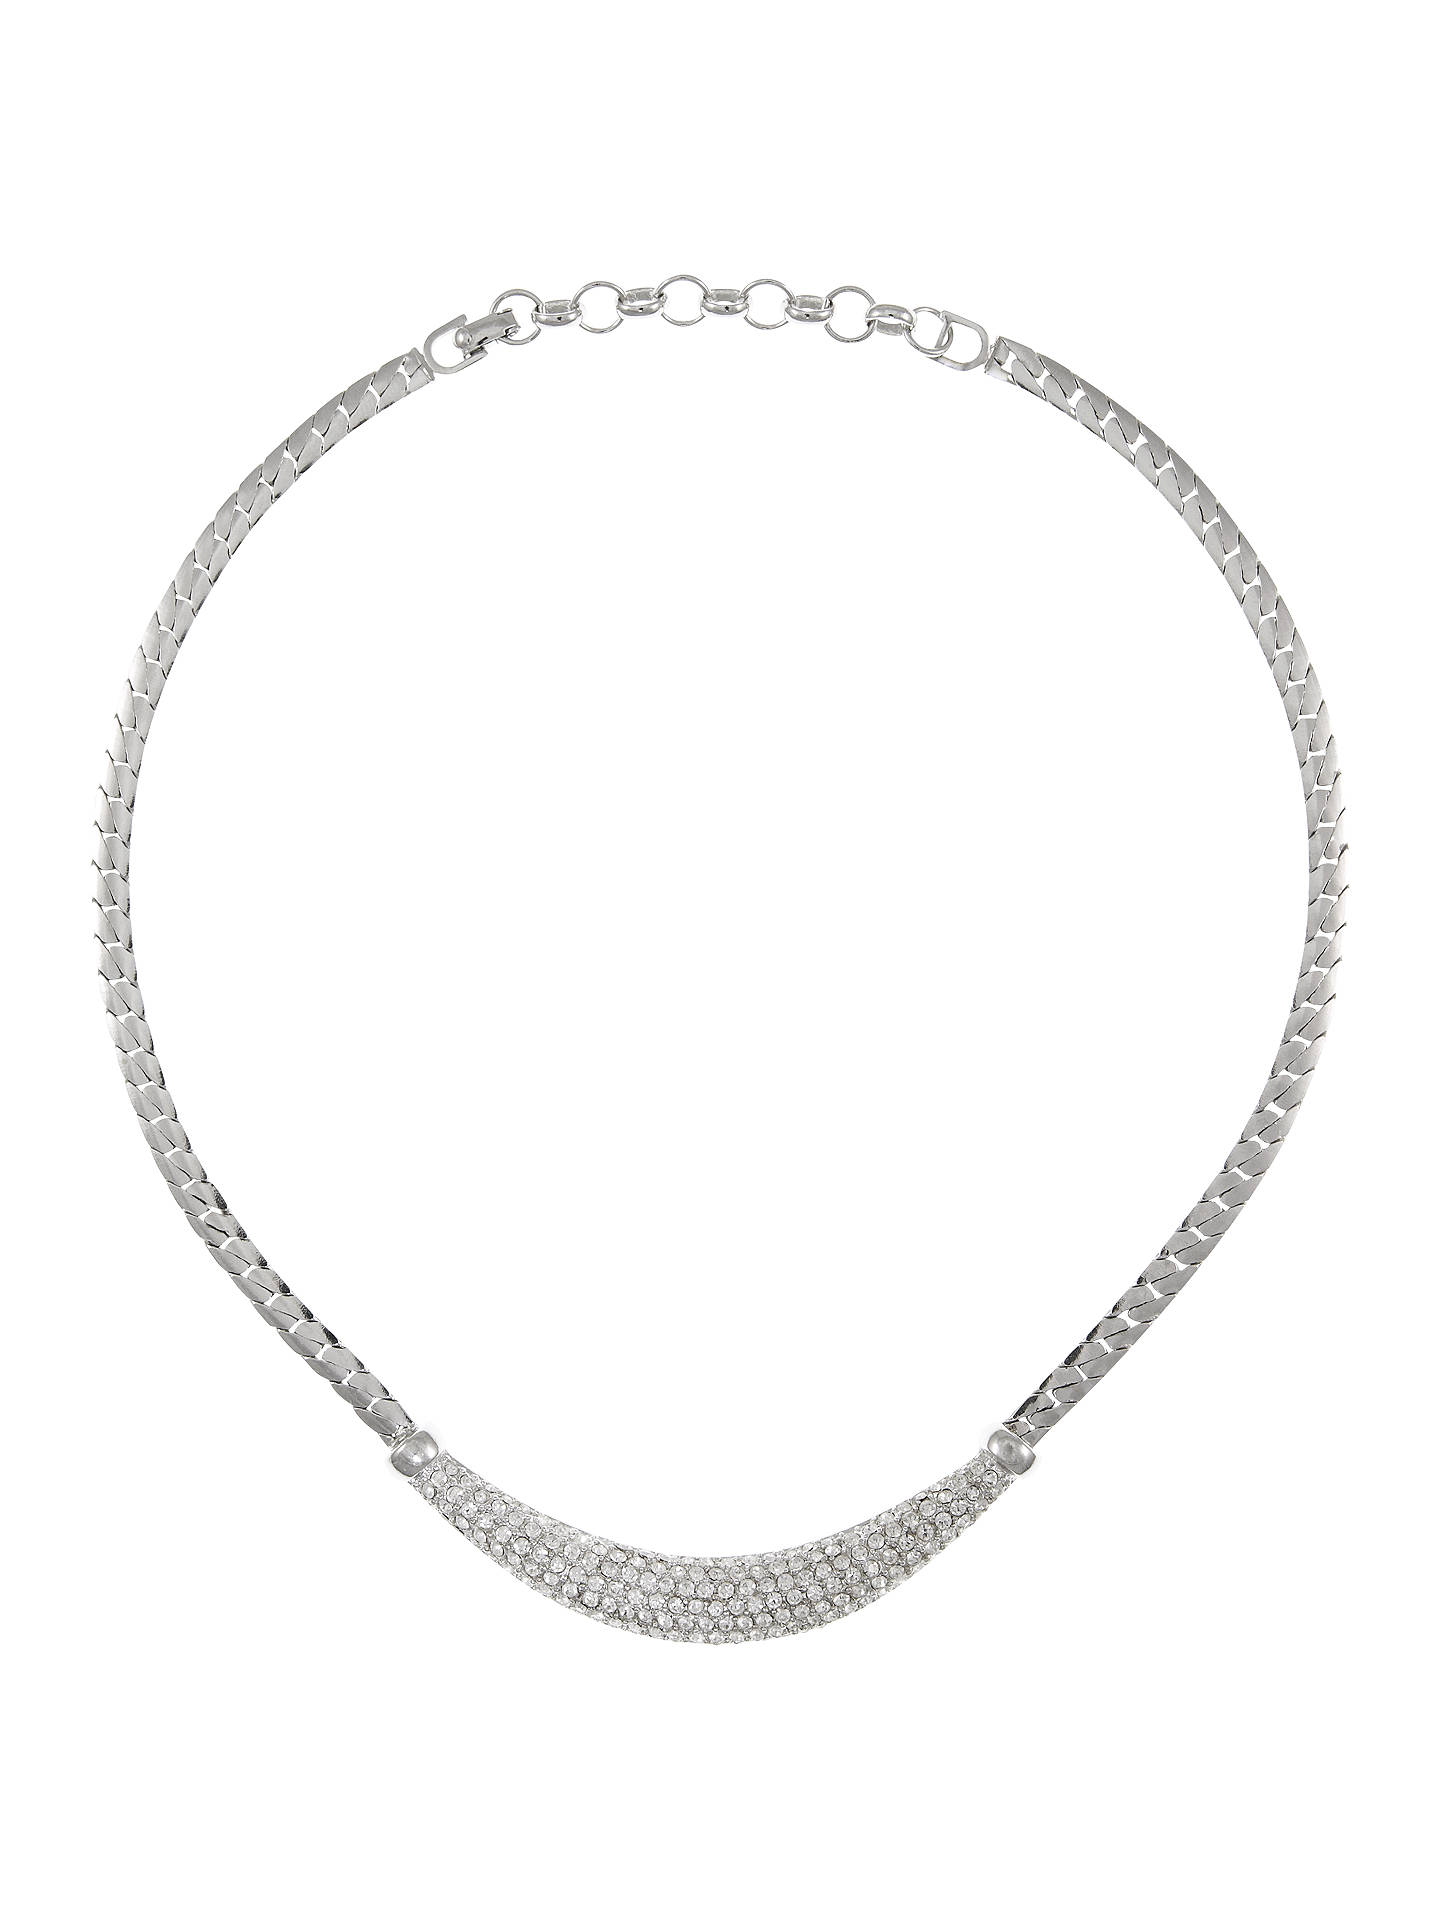 2d90e66a Eclectica Vintage 1980s Christian Dior Chrome Plated Snake Chain ...